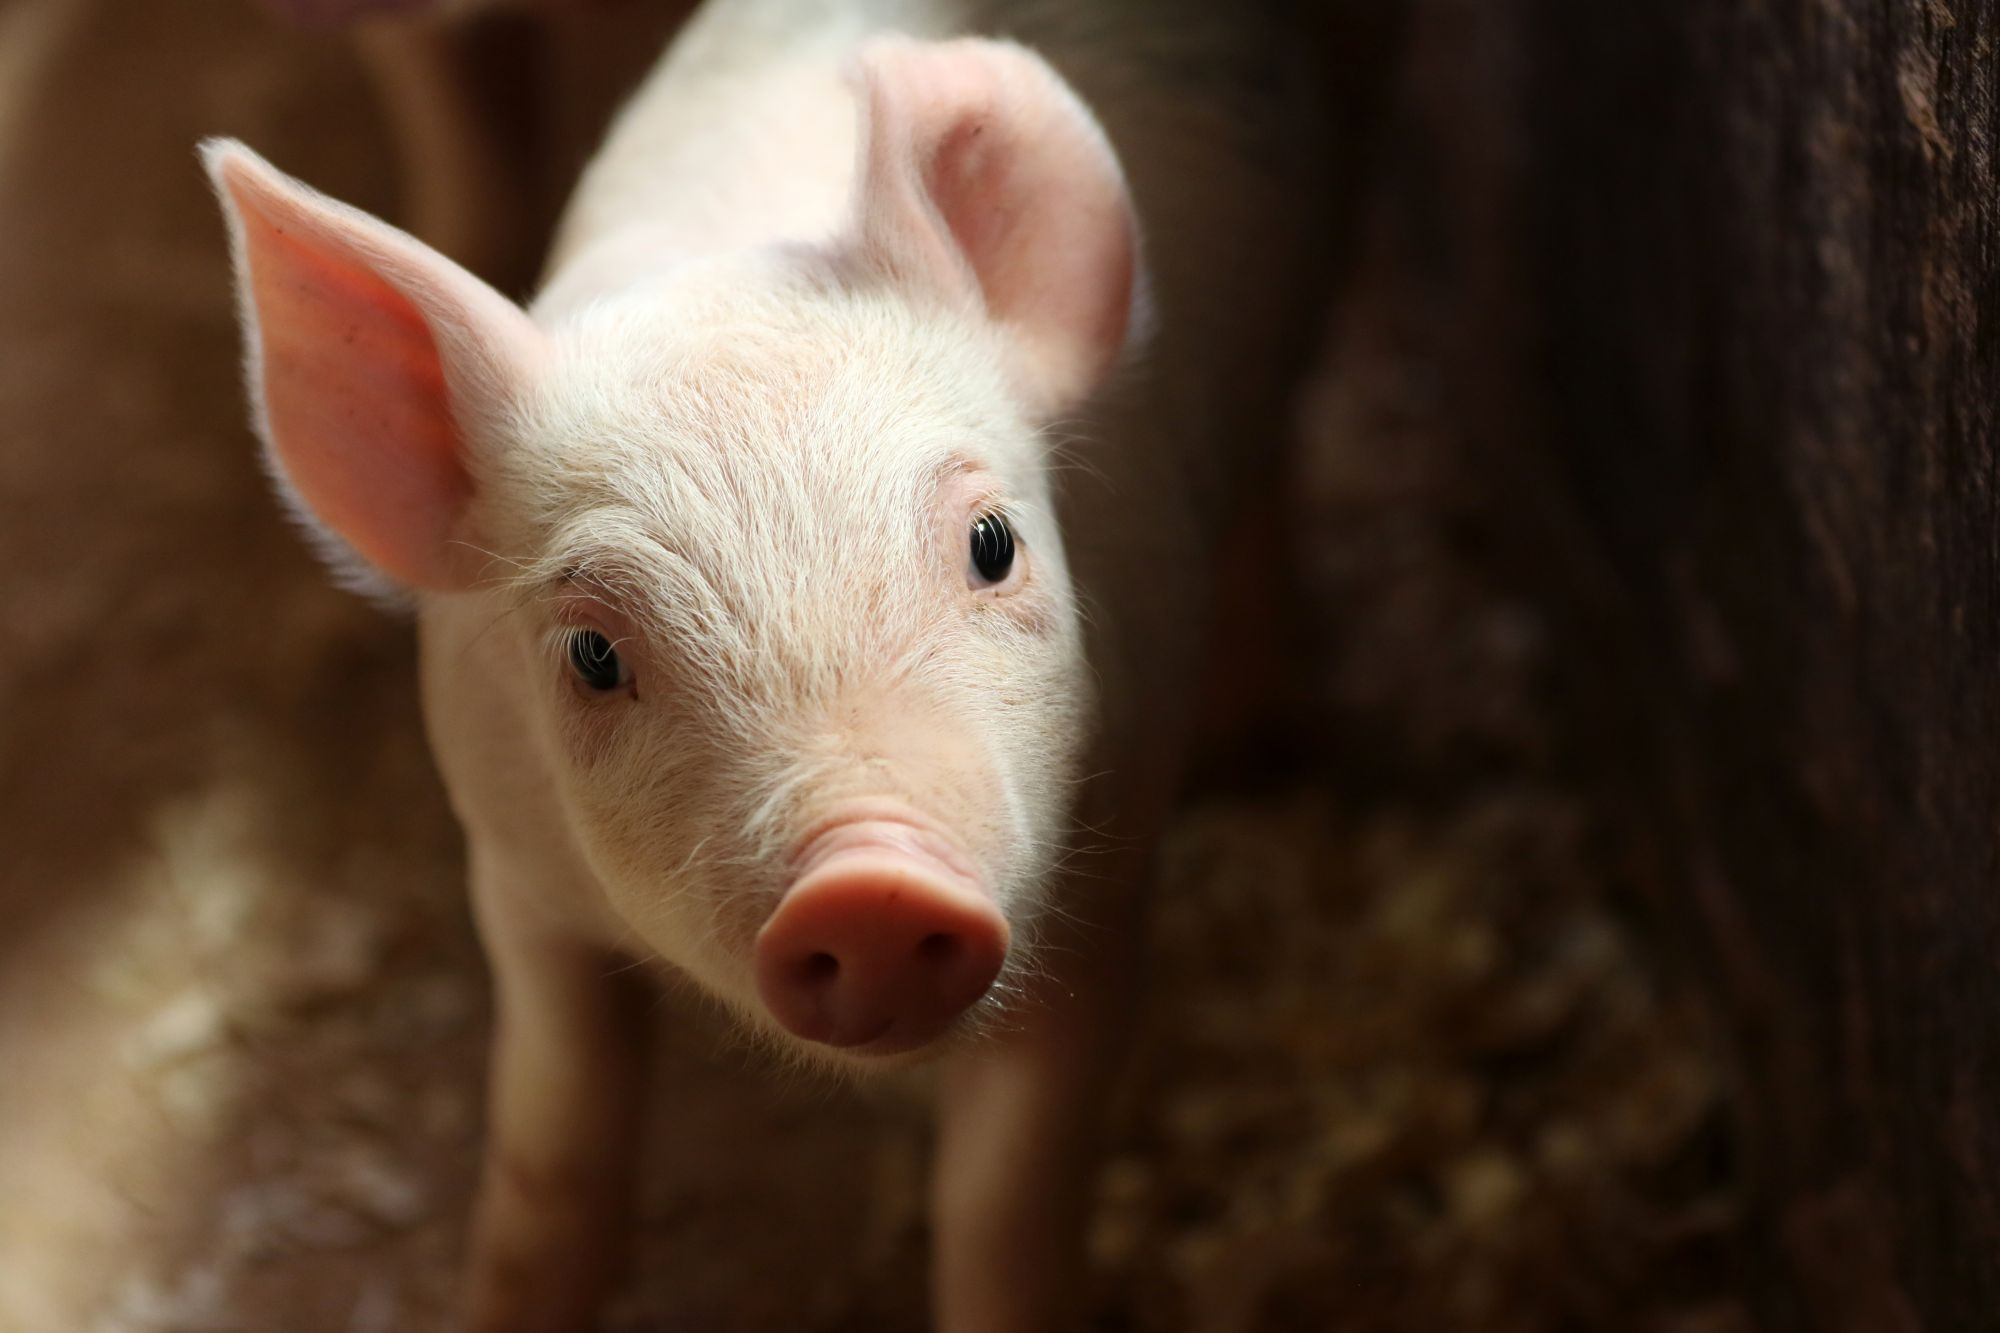 A piglet on a farm in Europe.